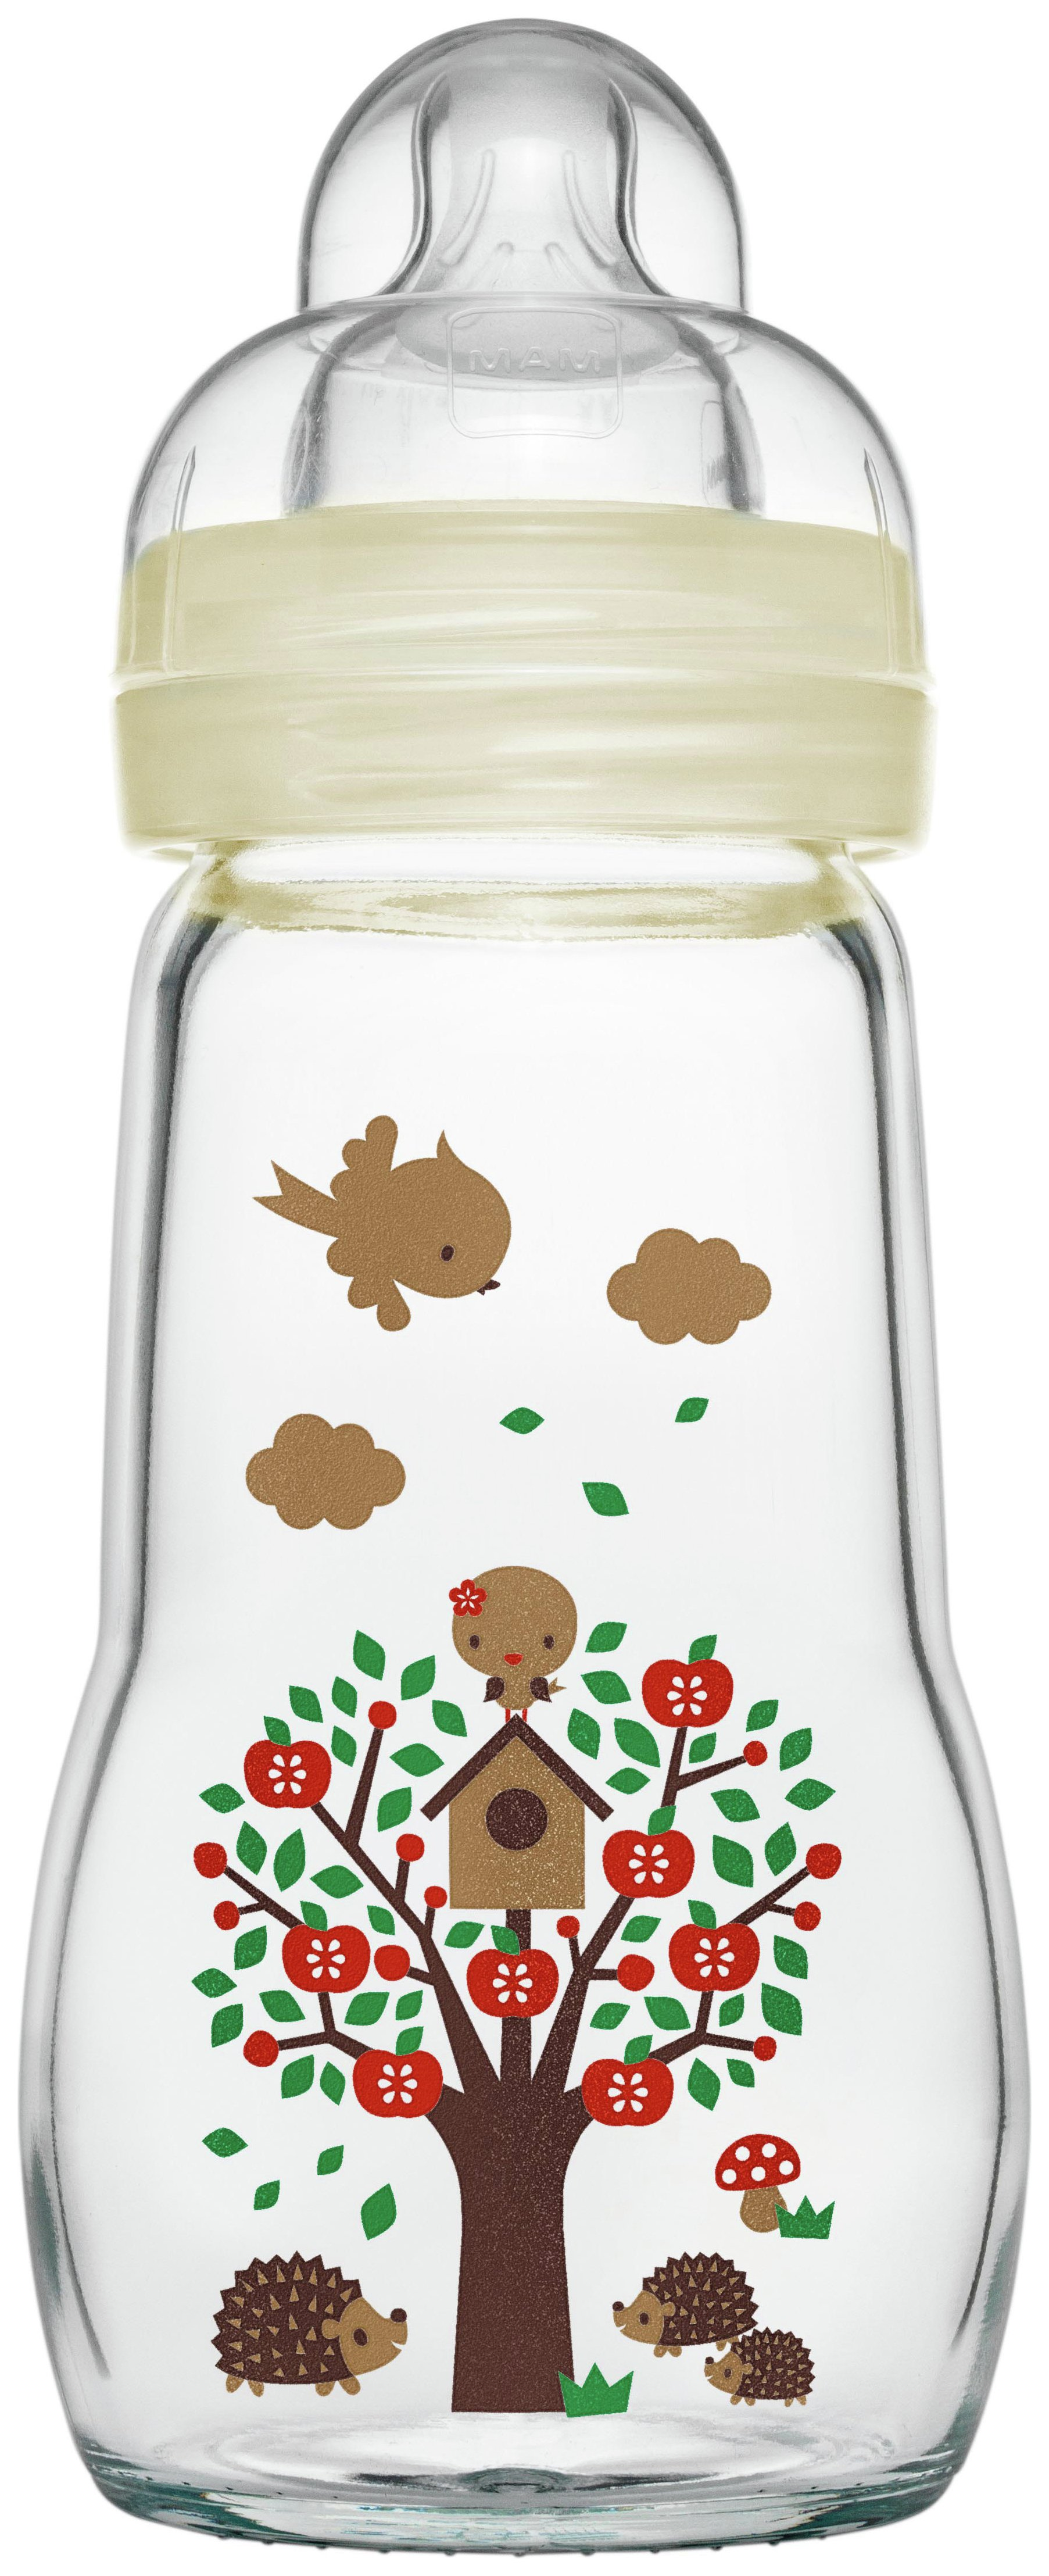 Image of MAM Feel Good 260ml Glass Bottle.